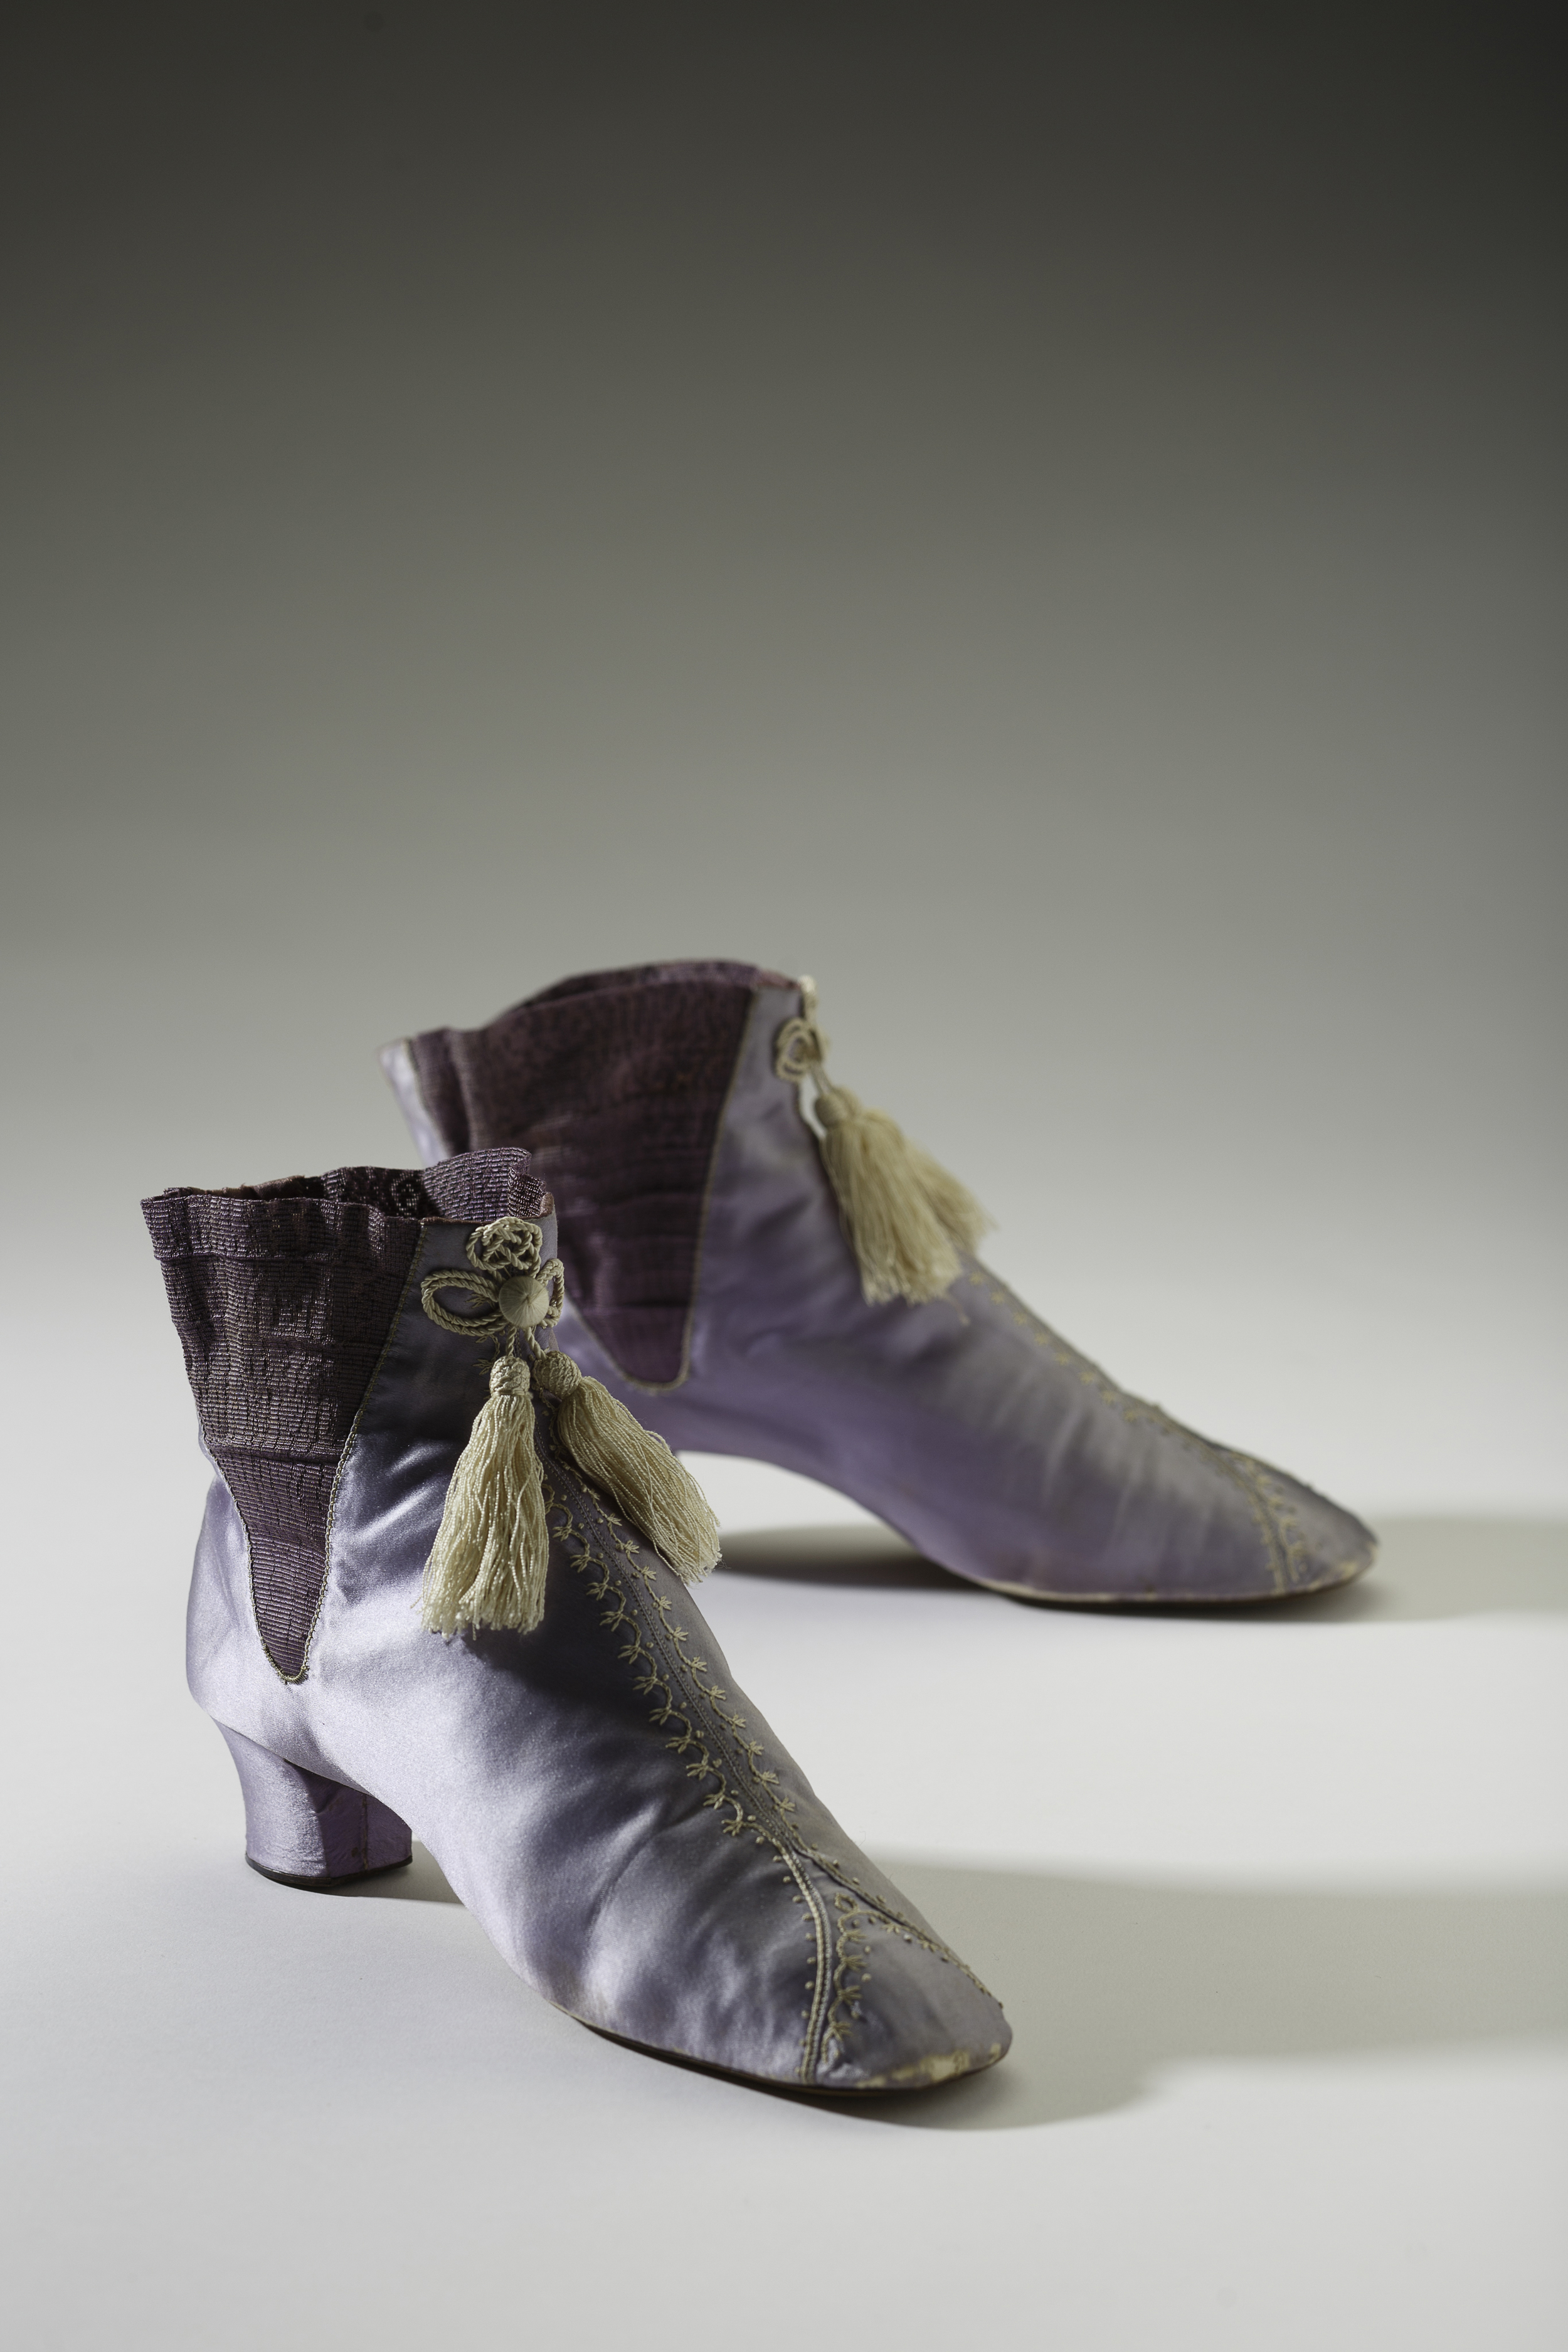 English, c.1860s . In 1856 when William Henry Perkins accidentally invented mauve, the first synthetic dye, a new age of colour in fashion was born. Soon vibrant and often gaudy synthetic colours were the toast of fashion, but many of these hues also came with risk to the wearer. Arsenic and picric acid were just some of the toxic chemicals used in create coloured clothing. Image © 2013 Bata Shoe Museum, Toronto, Canada